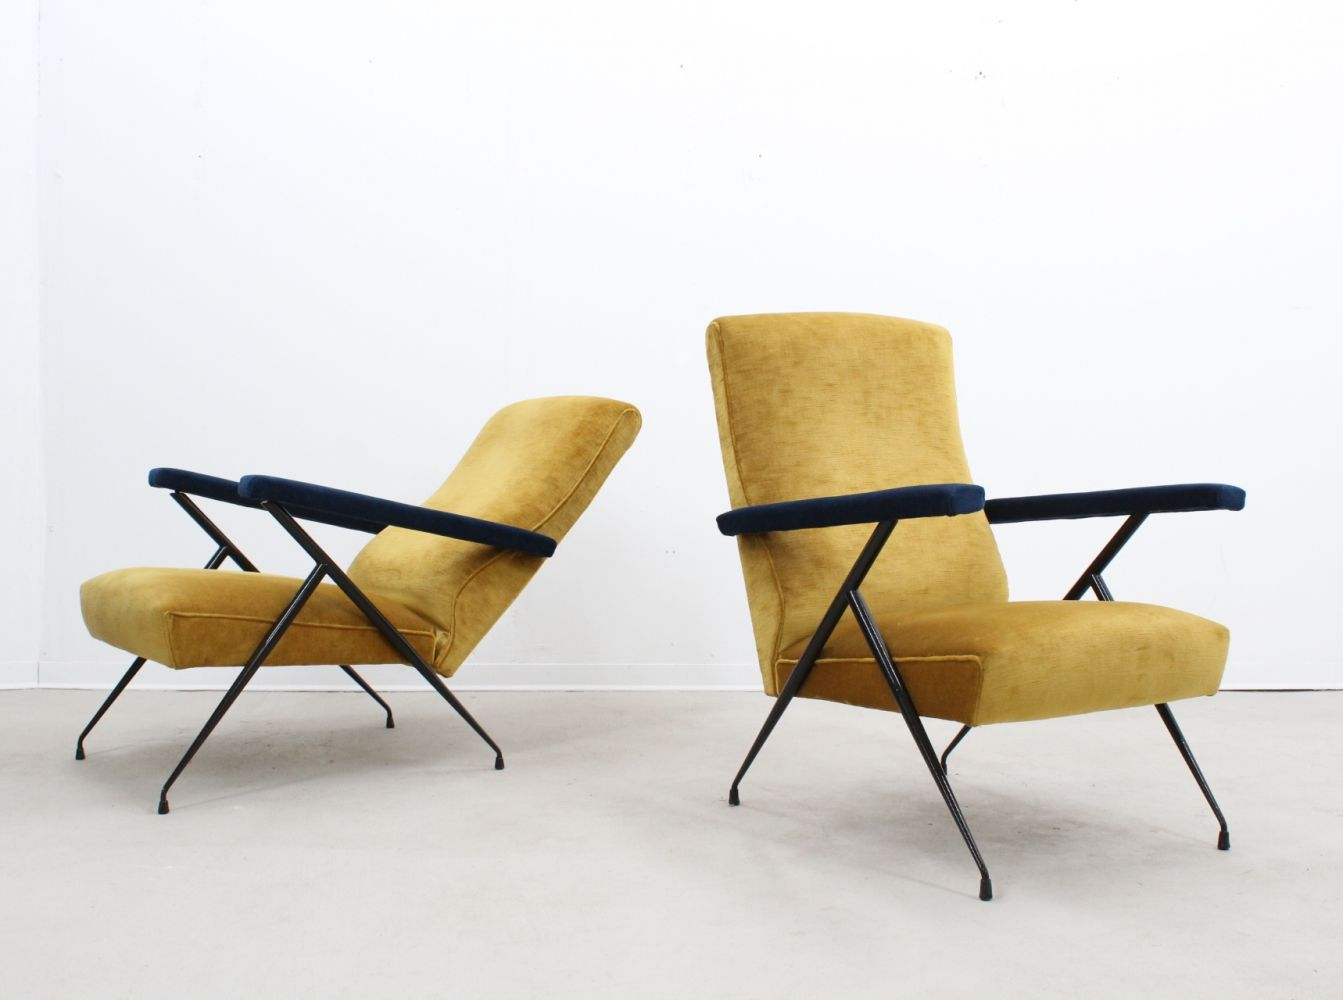 For Sale Mid Century Italian Design Reclinable Armchairs 1950s Chair Reclining Armchair Armchair